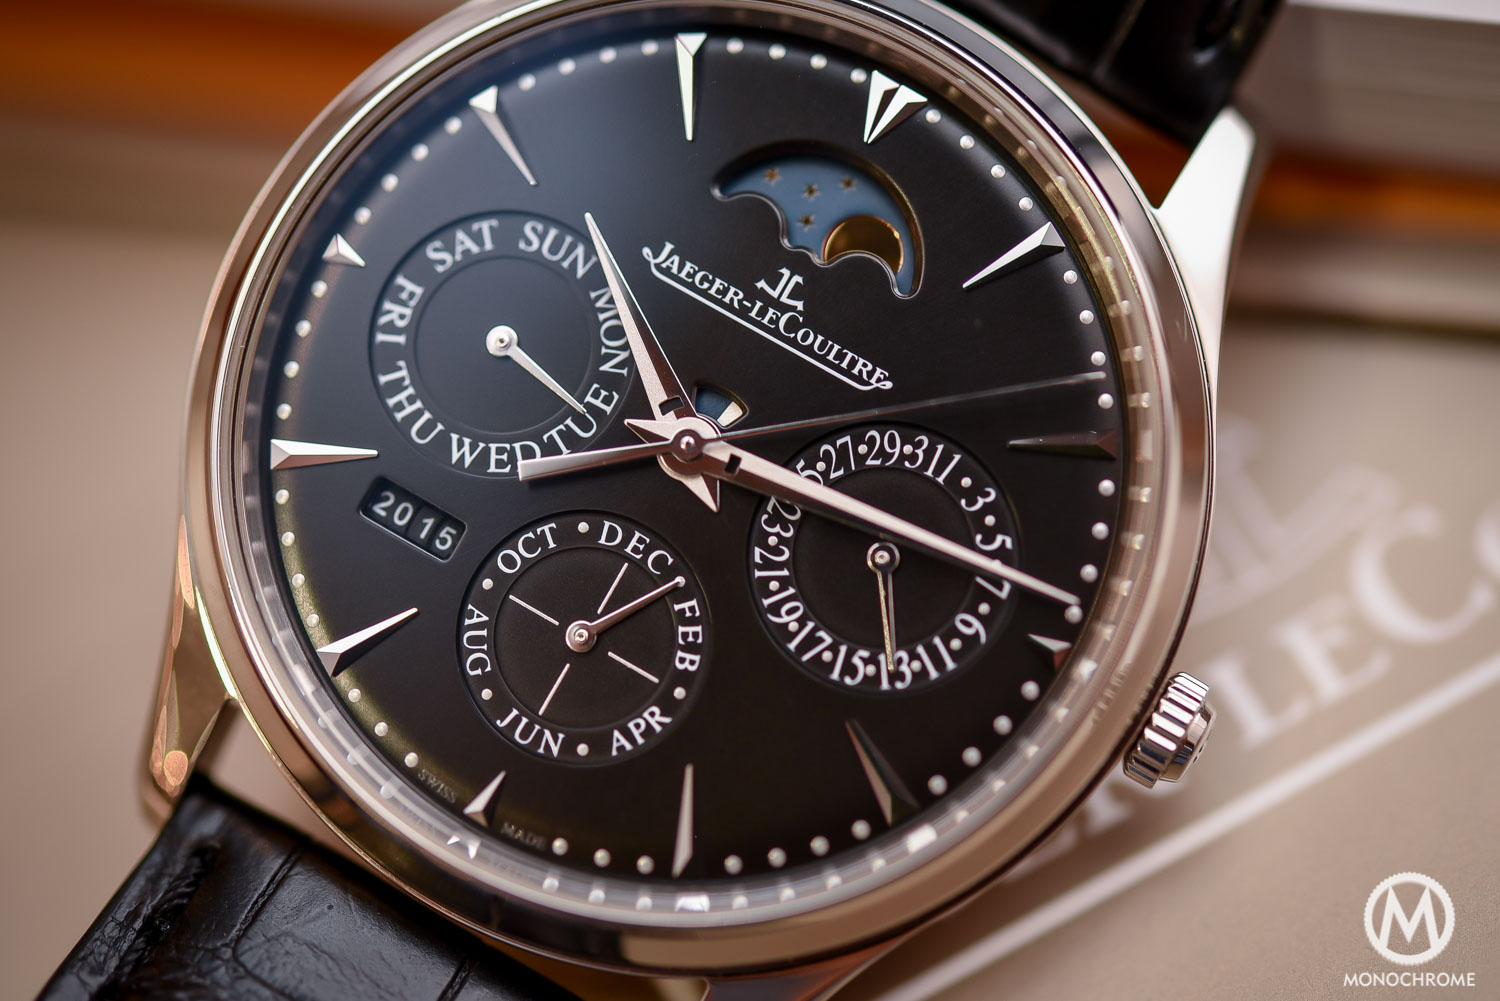 Jaeger-LeCoultre-Master-Ultra-Thin-Perpetual-steel-black-dial-SIHH-2016-8